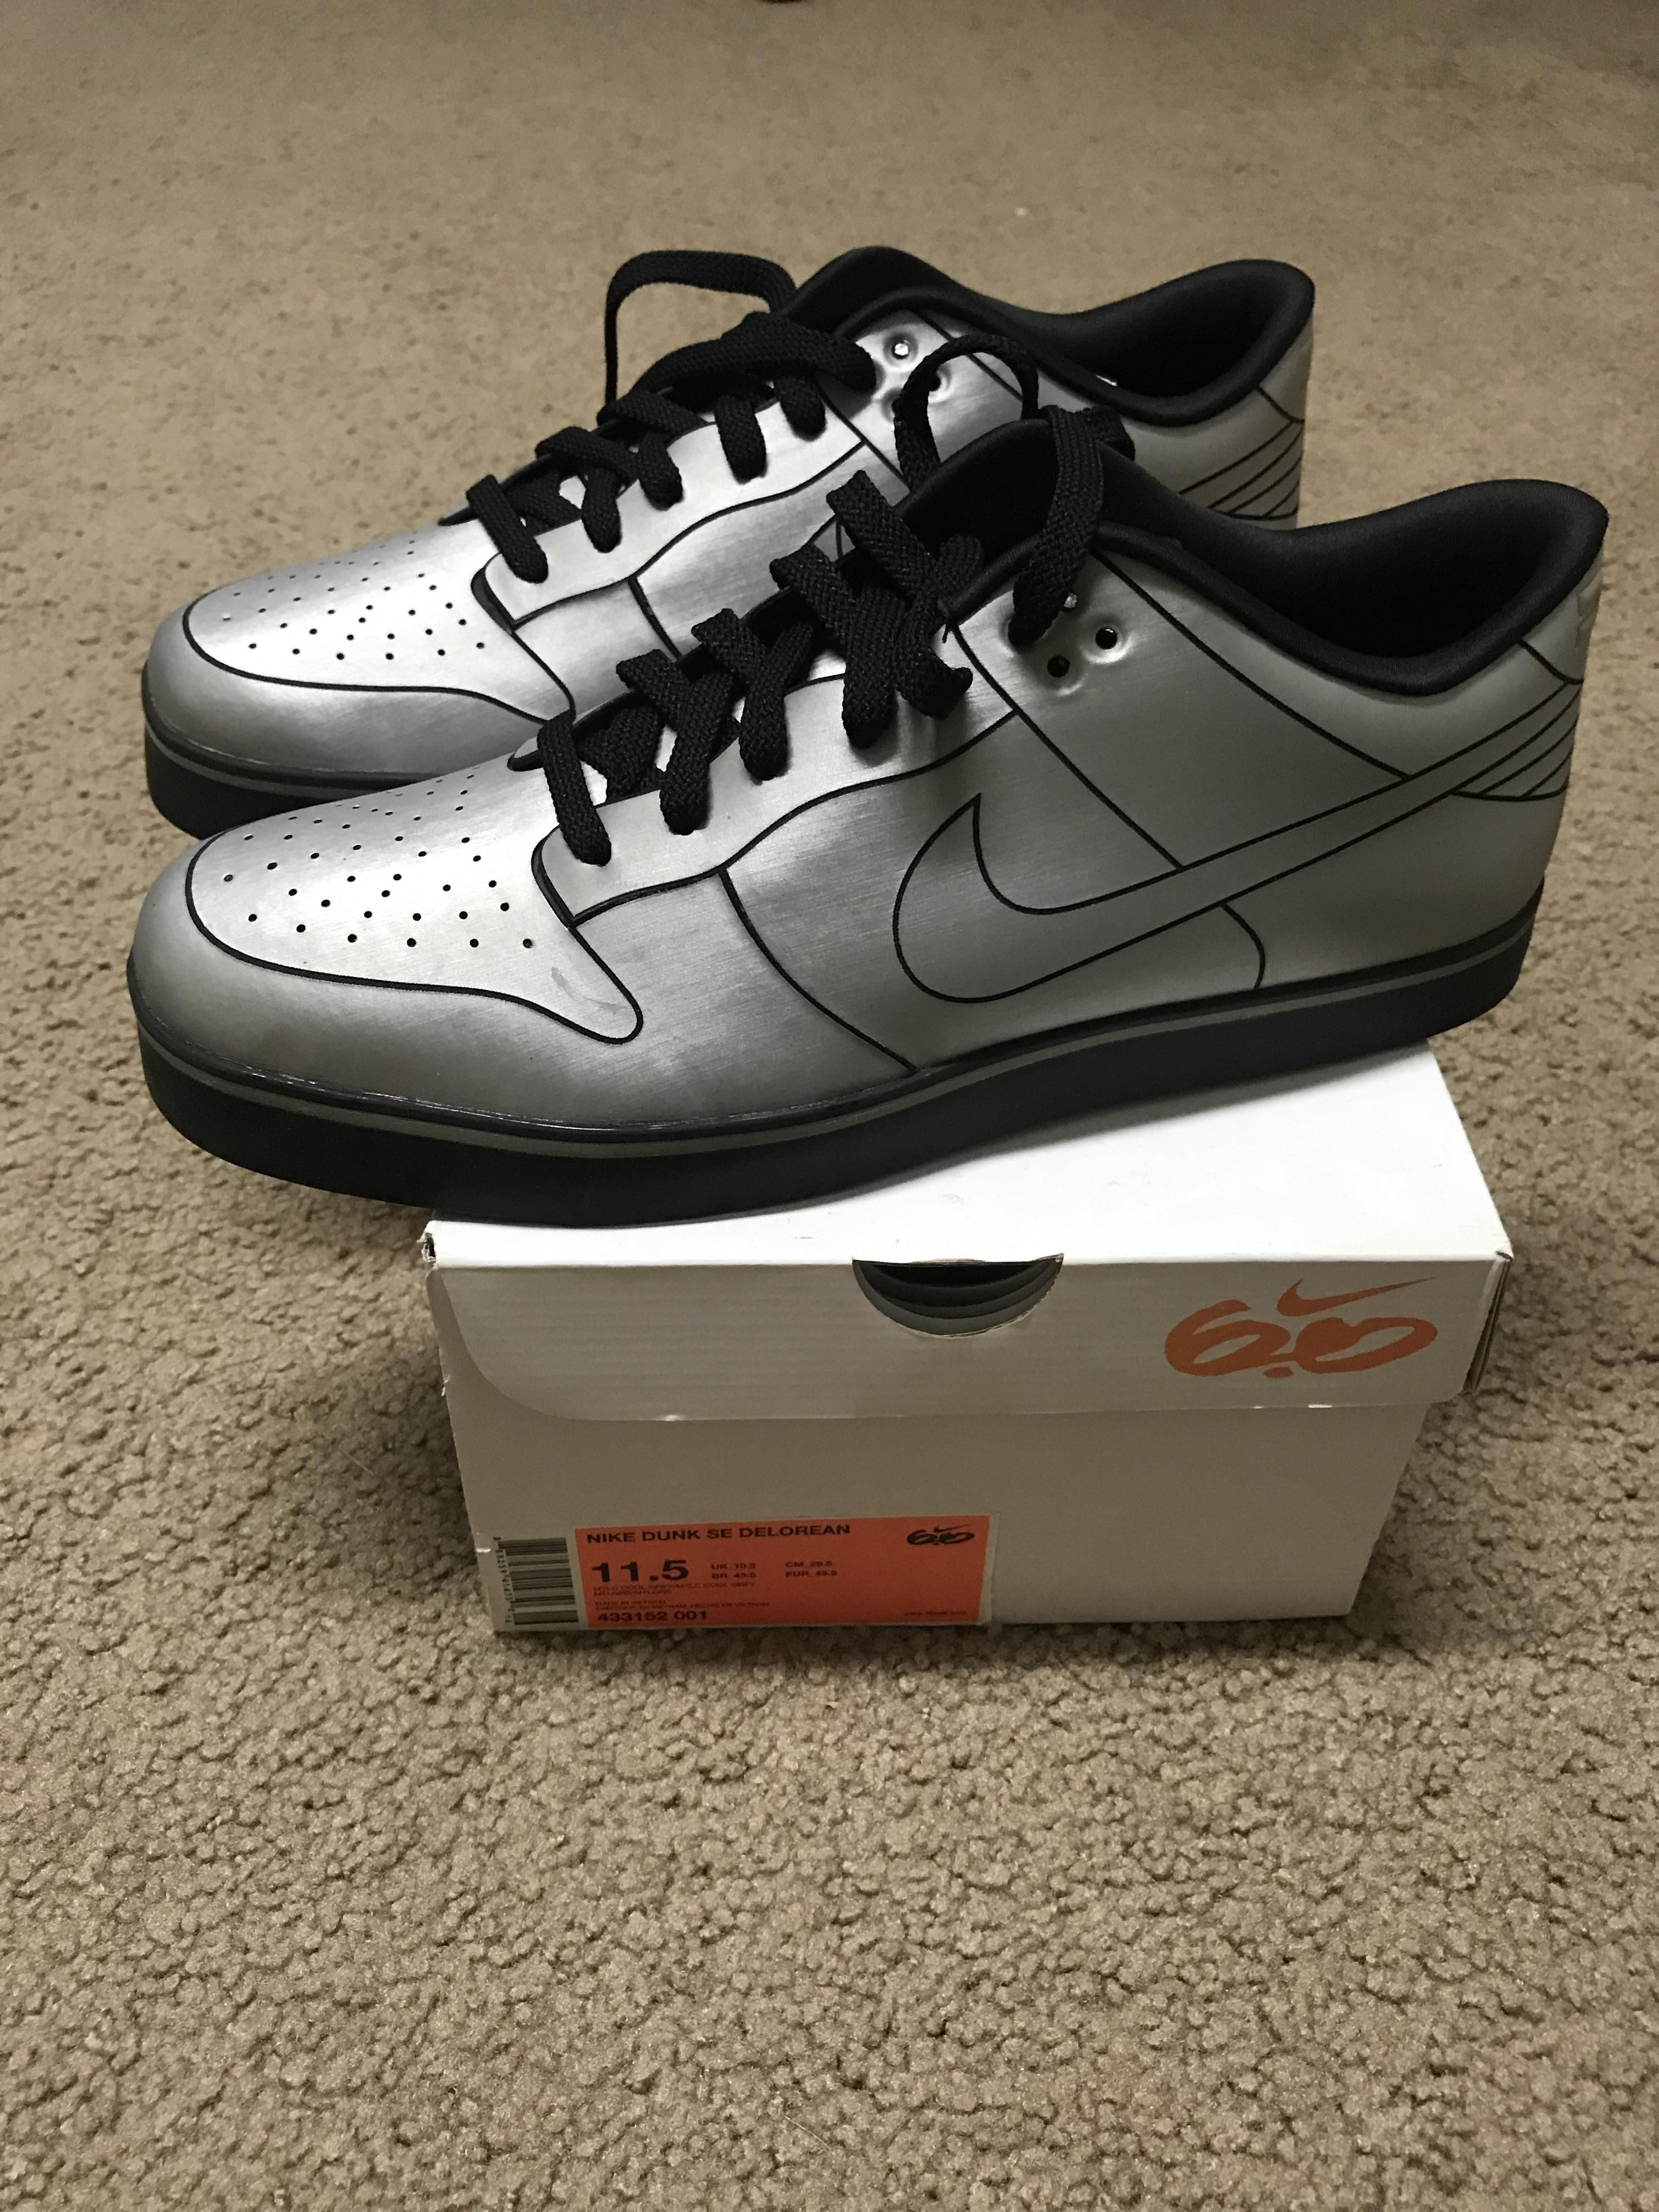 sports shoes dde52 358c2 ... italy ds nike dunk de delorean. whats your opinion on these 4b938 fae78